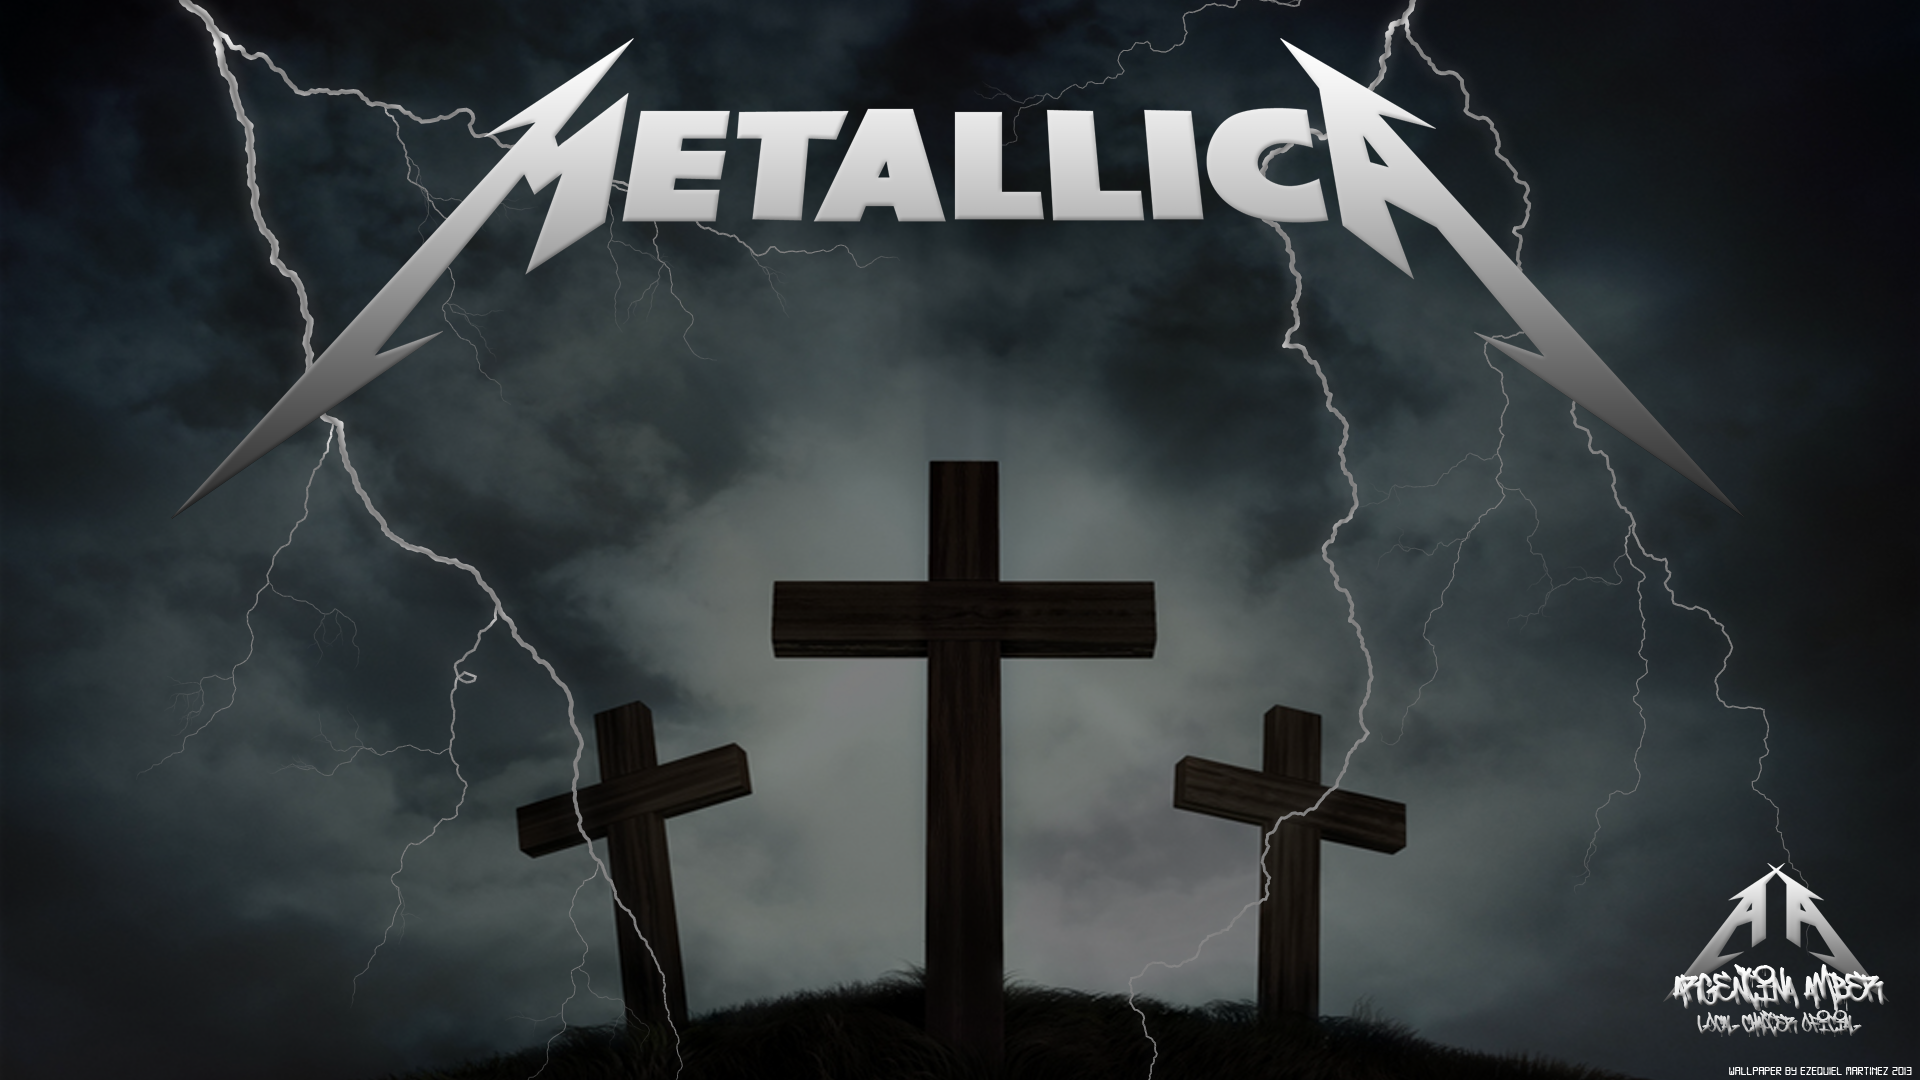 Metallica Wallpaper A13 Hd Desktop Wallpapers 4k Hd